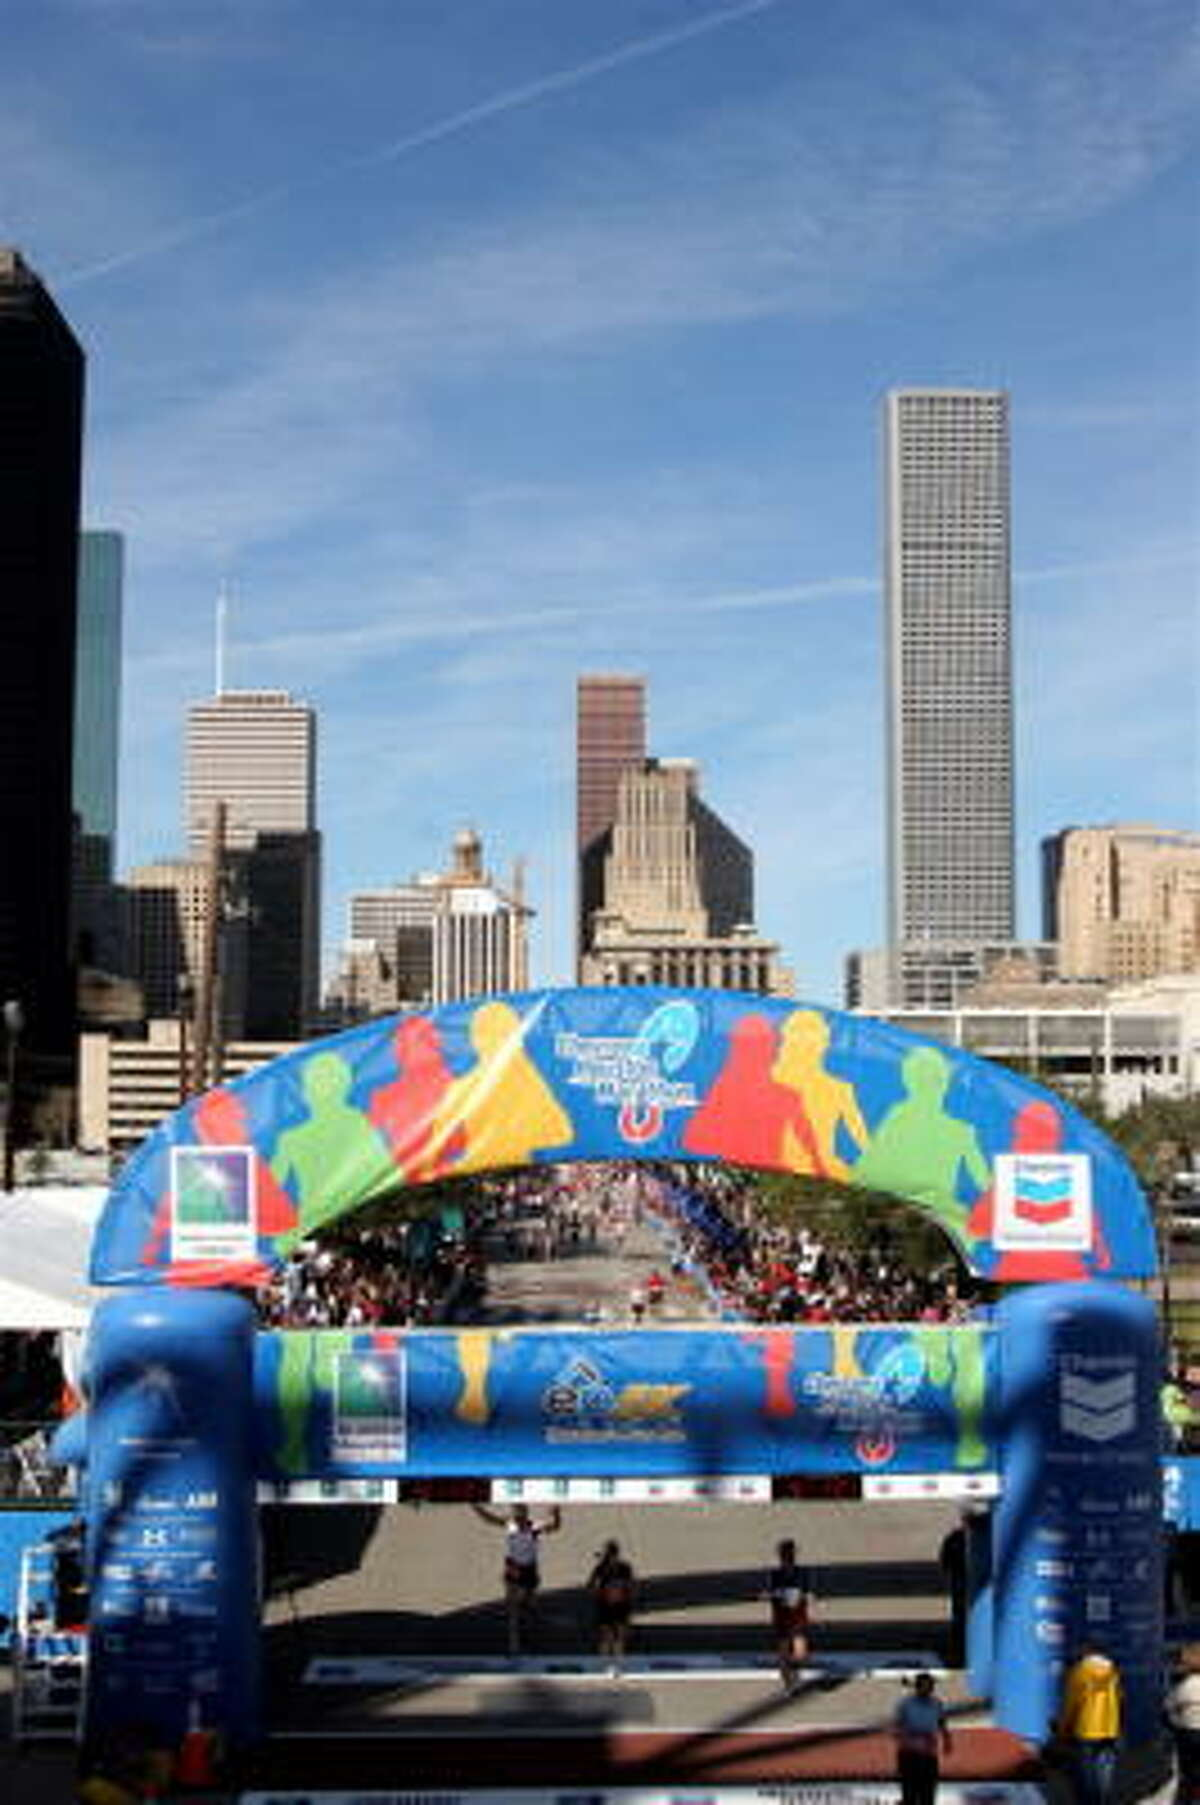 Thousands of runners took part in the Houston Marathon on Sunday.